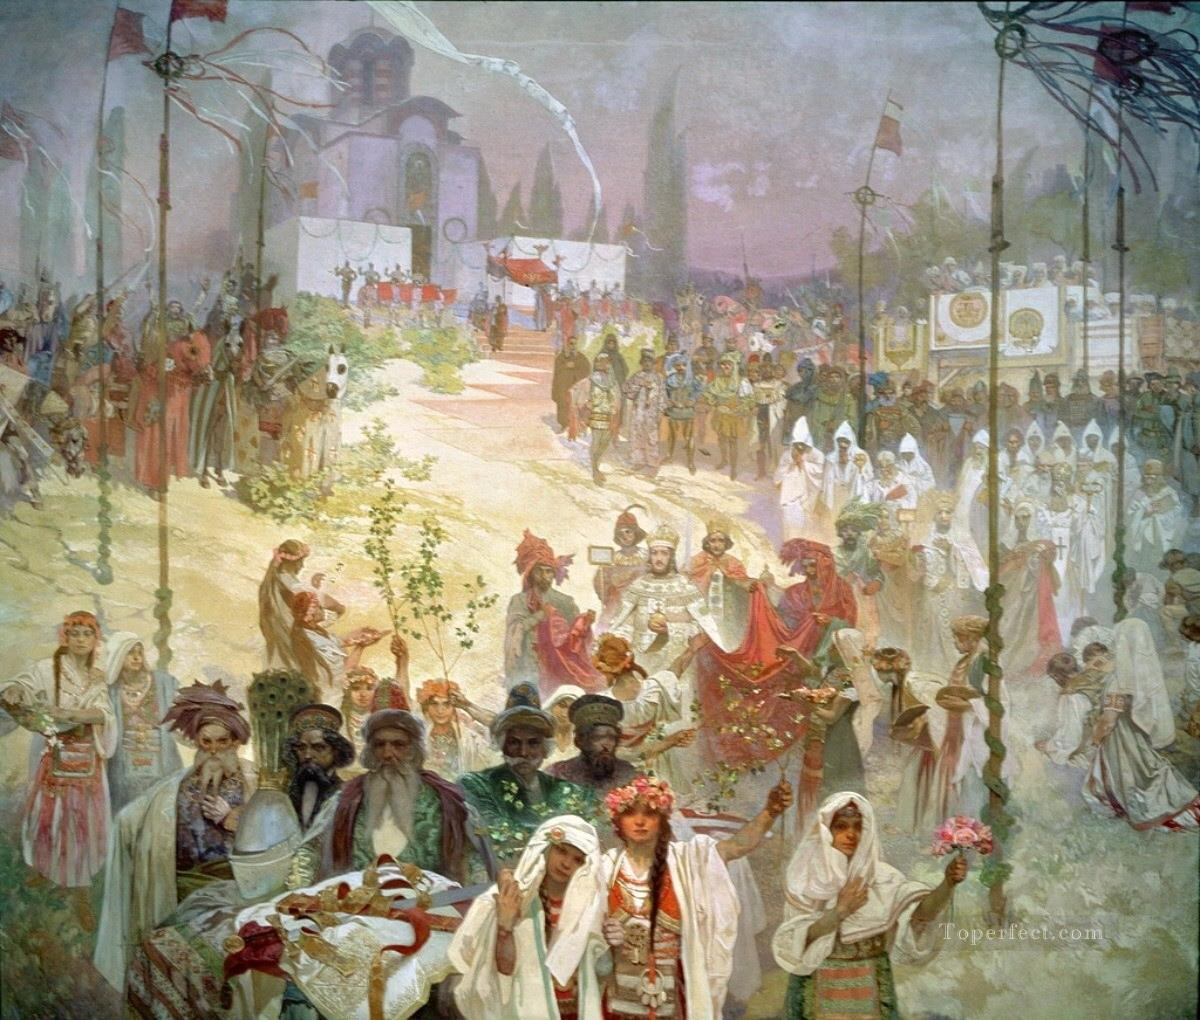 Coronation of Emperor Duaan in The Slavonic Epic Alphonse Mucha Oil Paintings